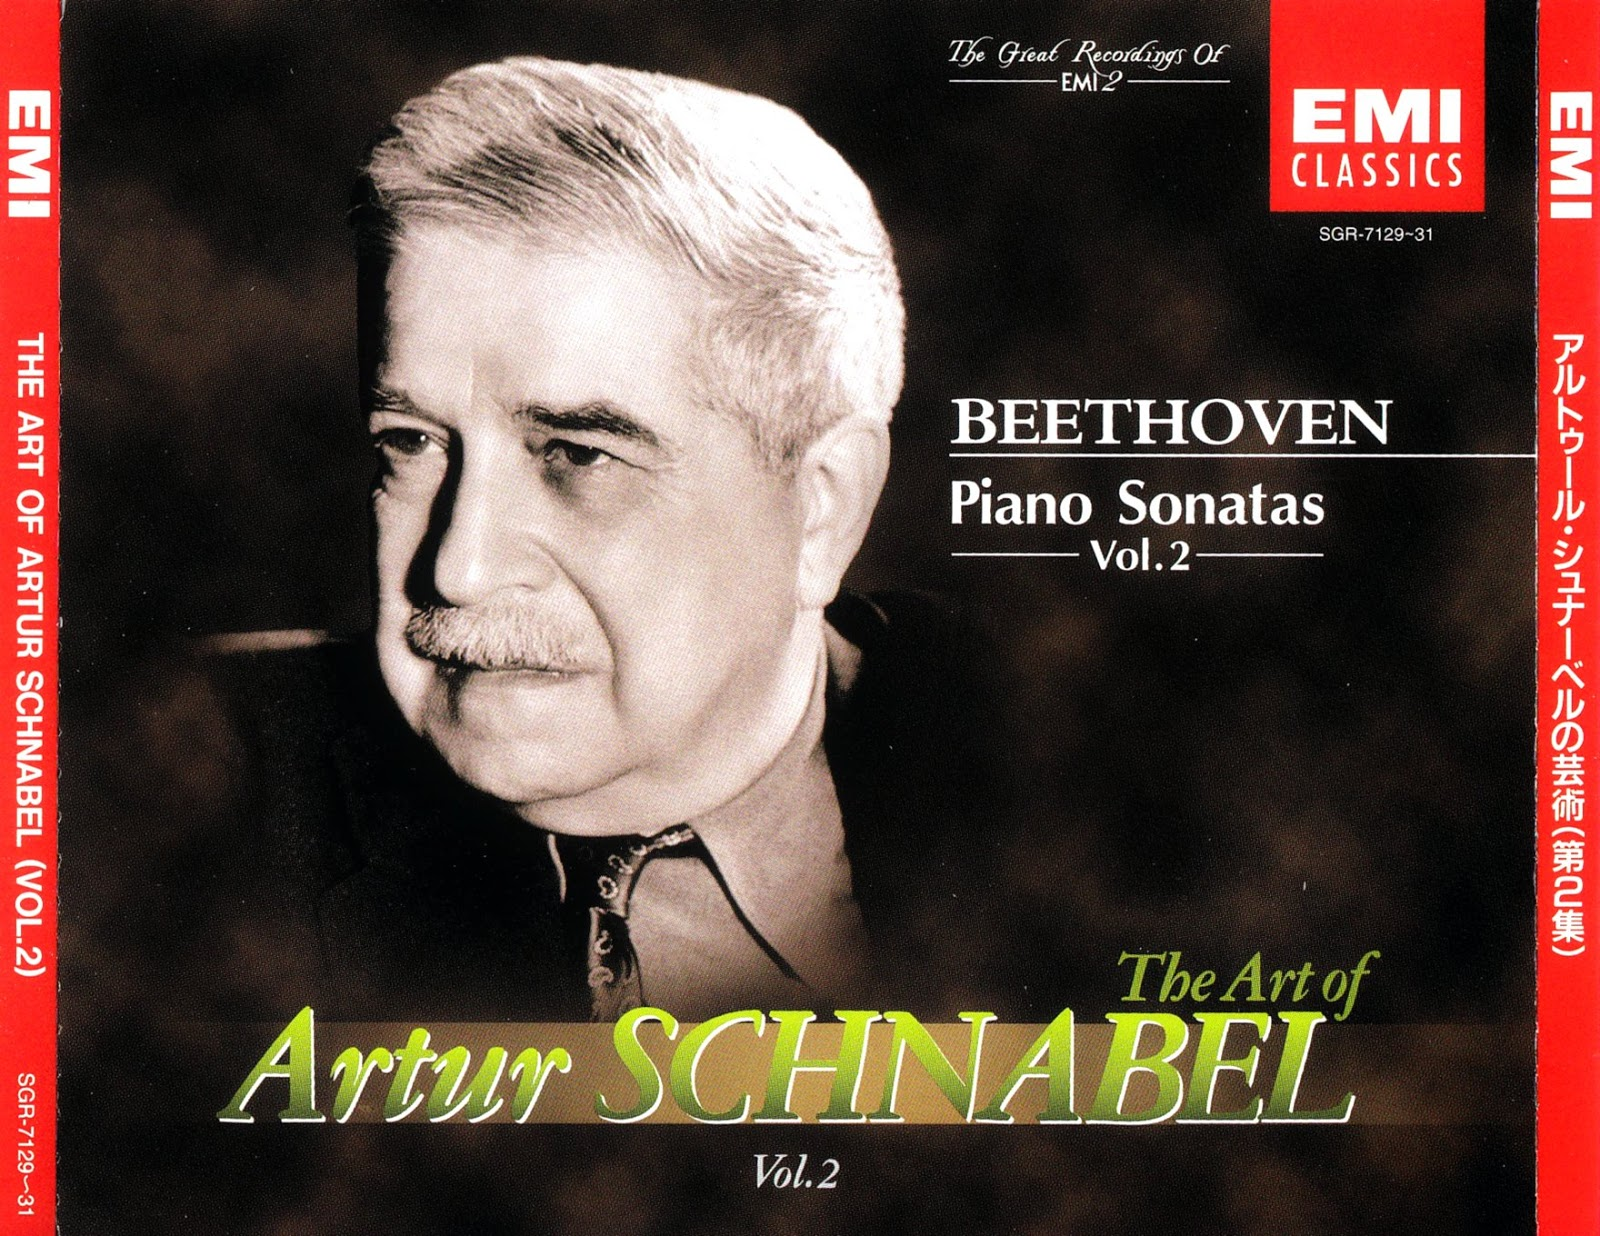 an introduction to ludwig van beethovens sonata no 1 in d major 1 ludwig van beethoven's piano works revolutionized beethoven's sonata no 21 in c major op beethoven uses this movement as an introduction to the.